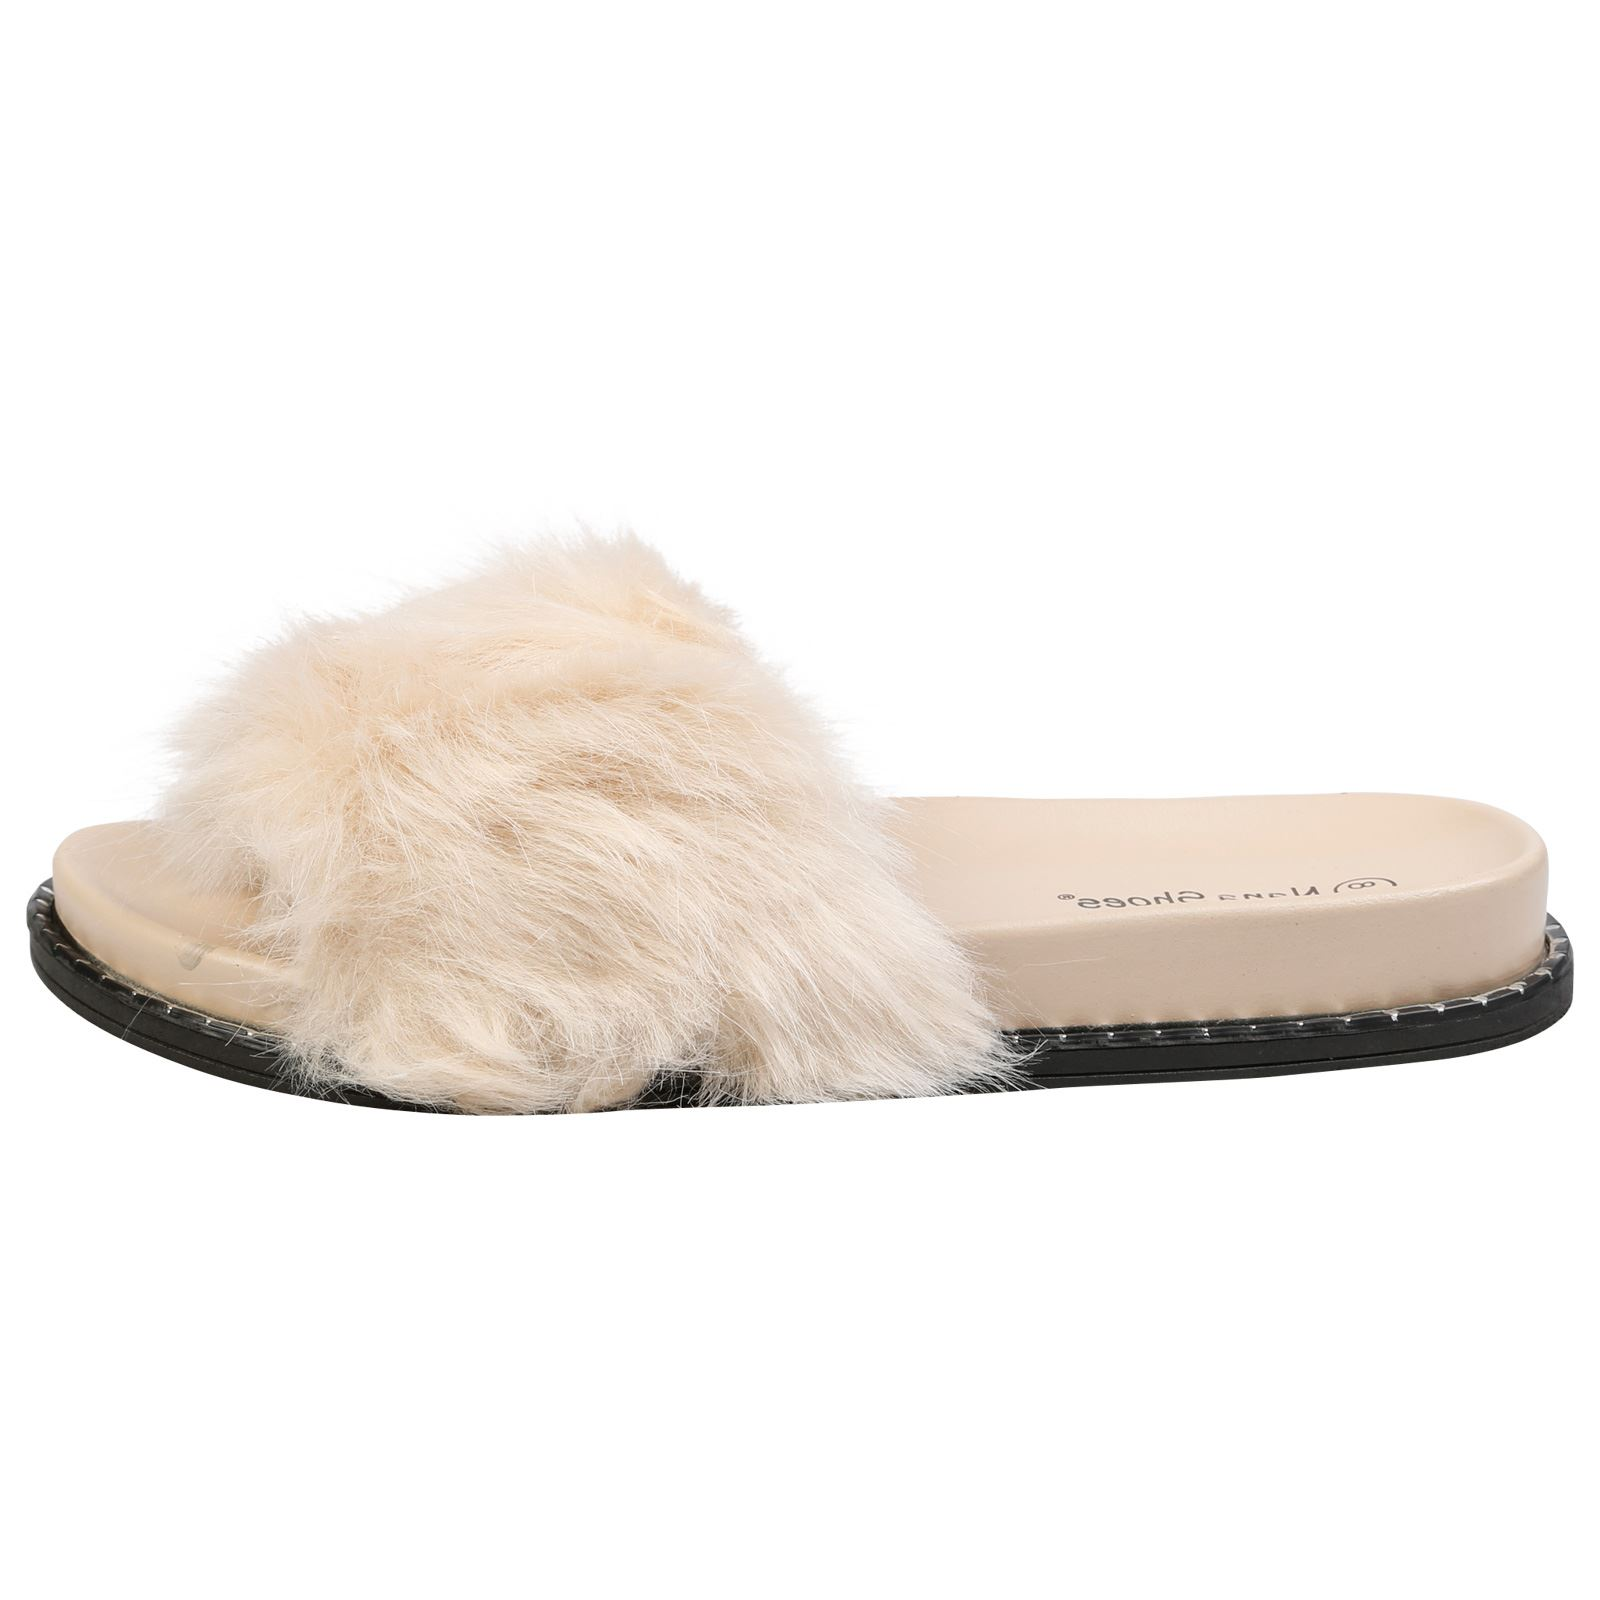 WOMENS SHOES LADIES POOL SLIDES MULES SANDALS FLUFFY FURRY SLIP ON ... a21c5fdfbc